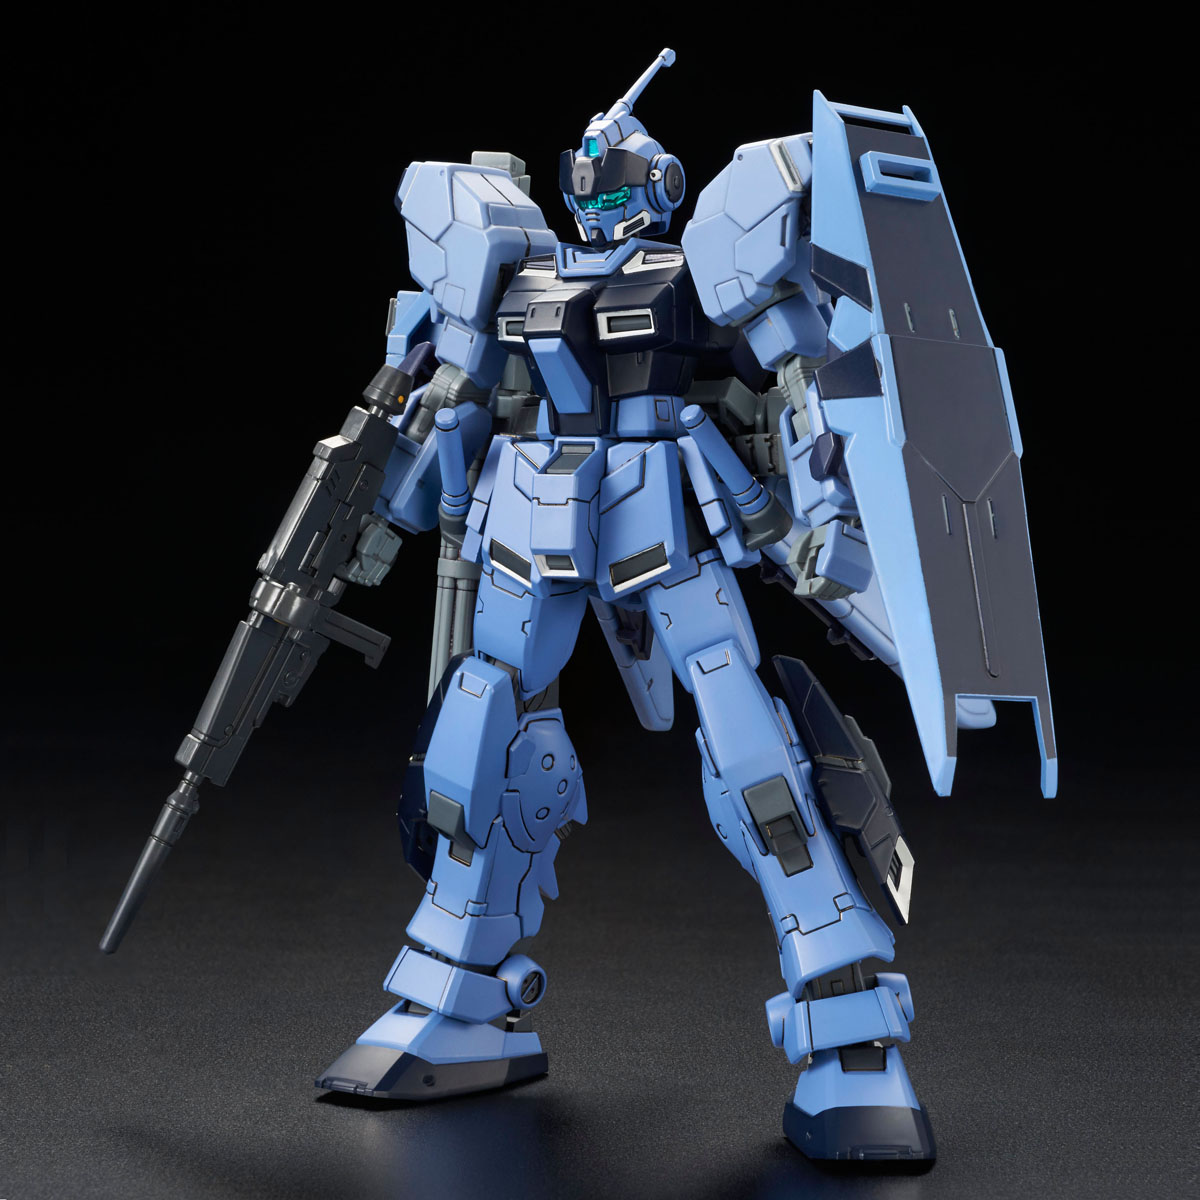 HGUC 1/144 RX-80PR ペイルライダー(空間戦仕様) [Pale Rider (Space Type)]